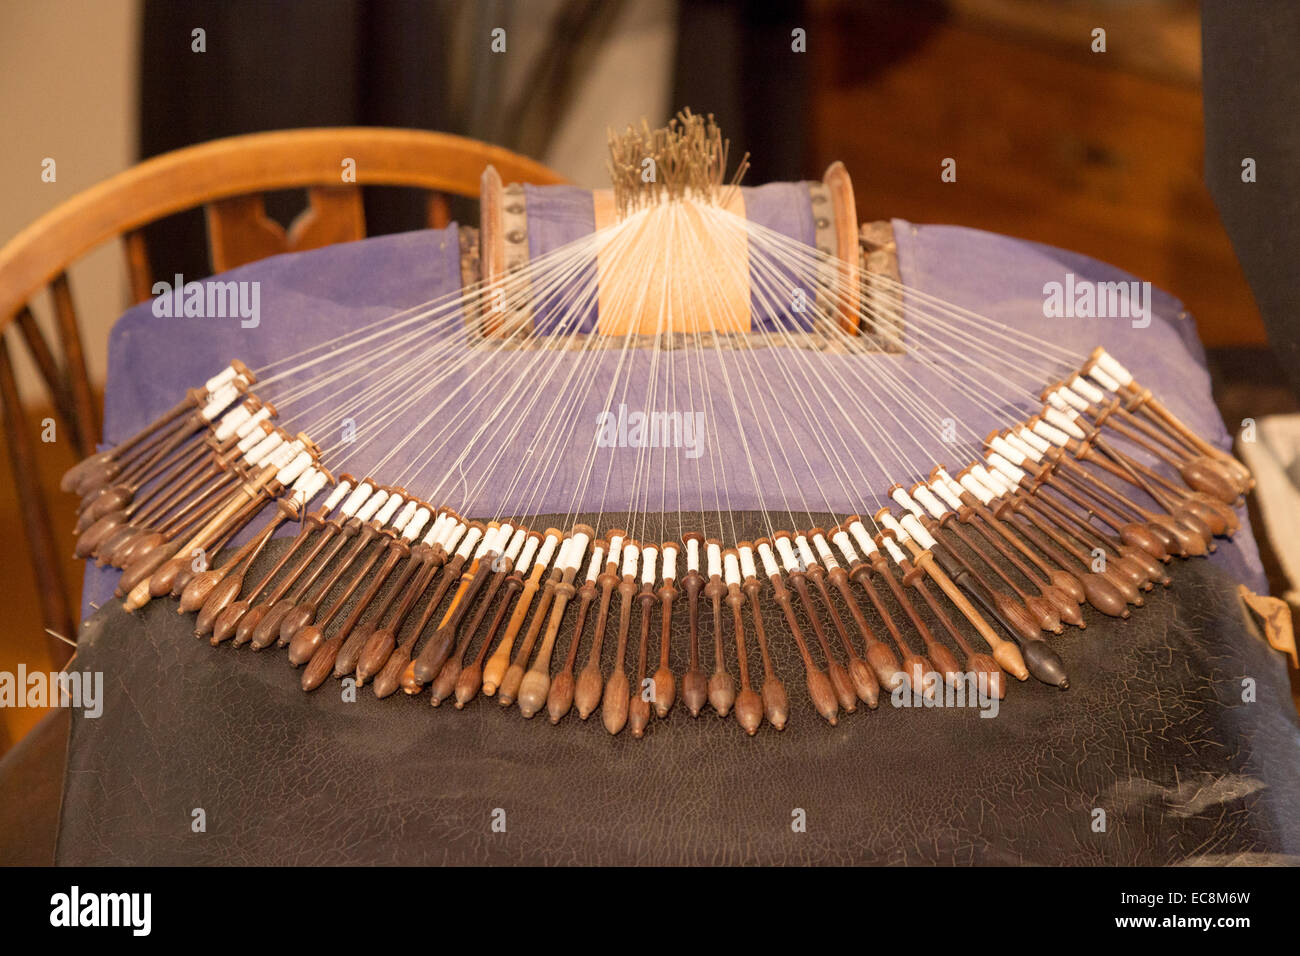 Old fashioned bobbin lace making cushion in the Museum of Folklore, Bruges, Belgium, Europe - Stock Image